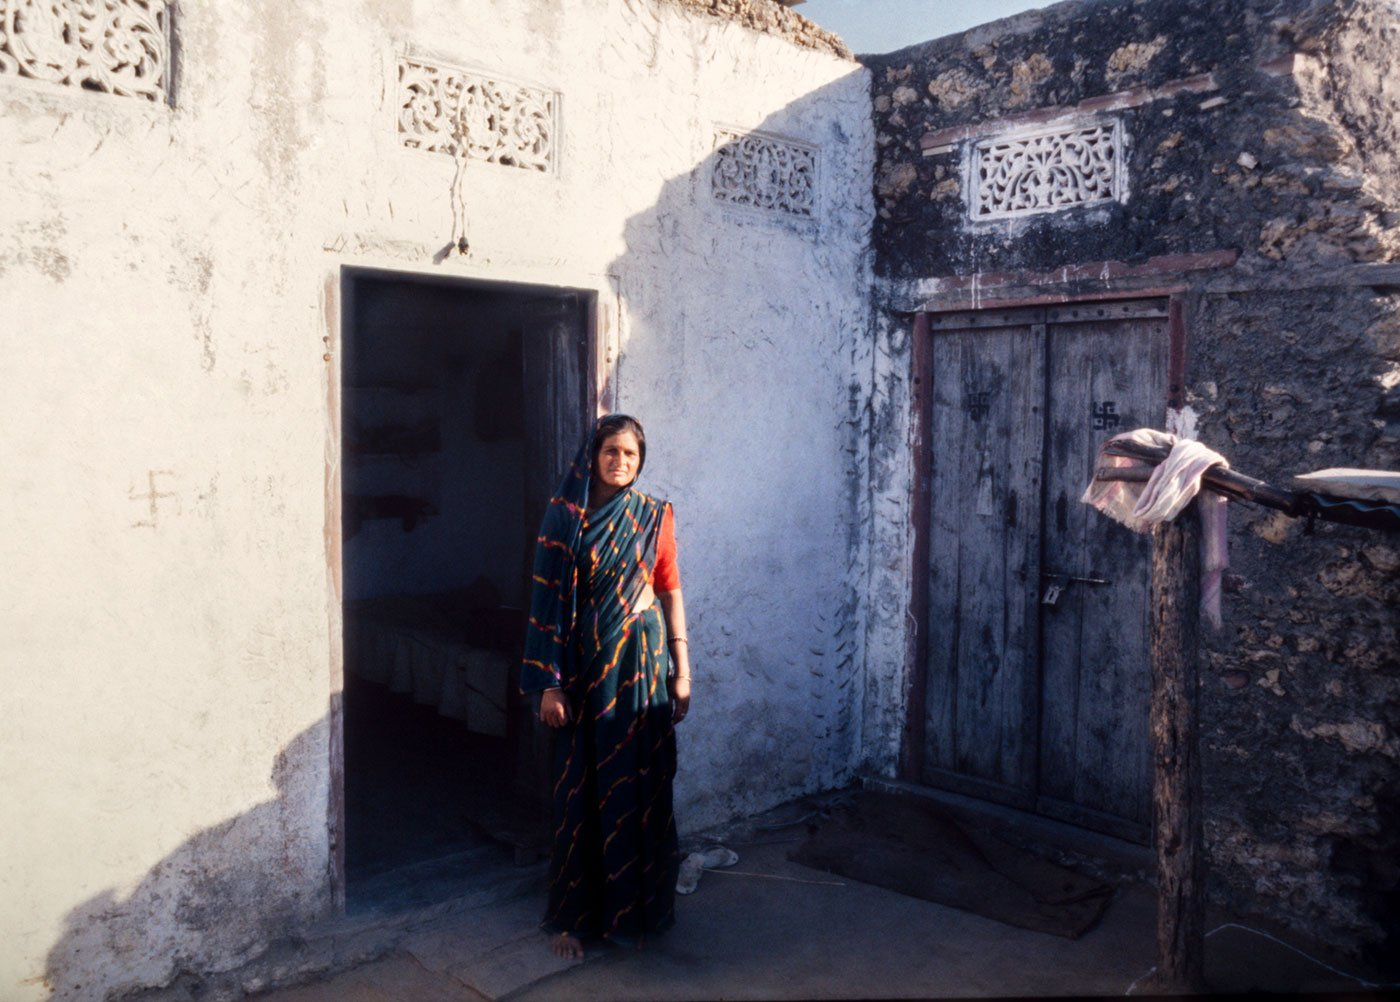 Anju Phulwaria, the persecuted sarpanch, standing outside her house